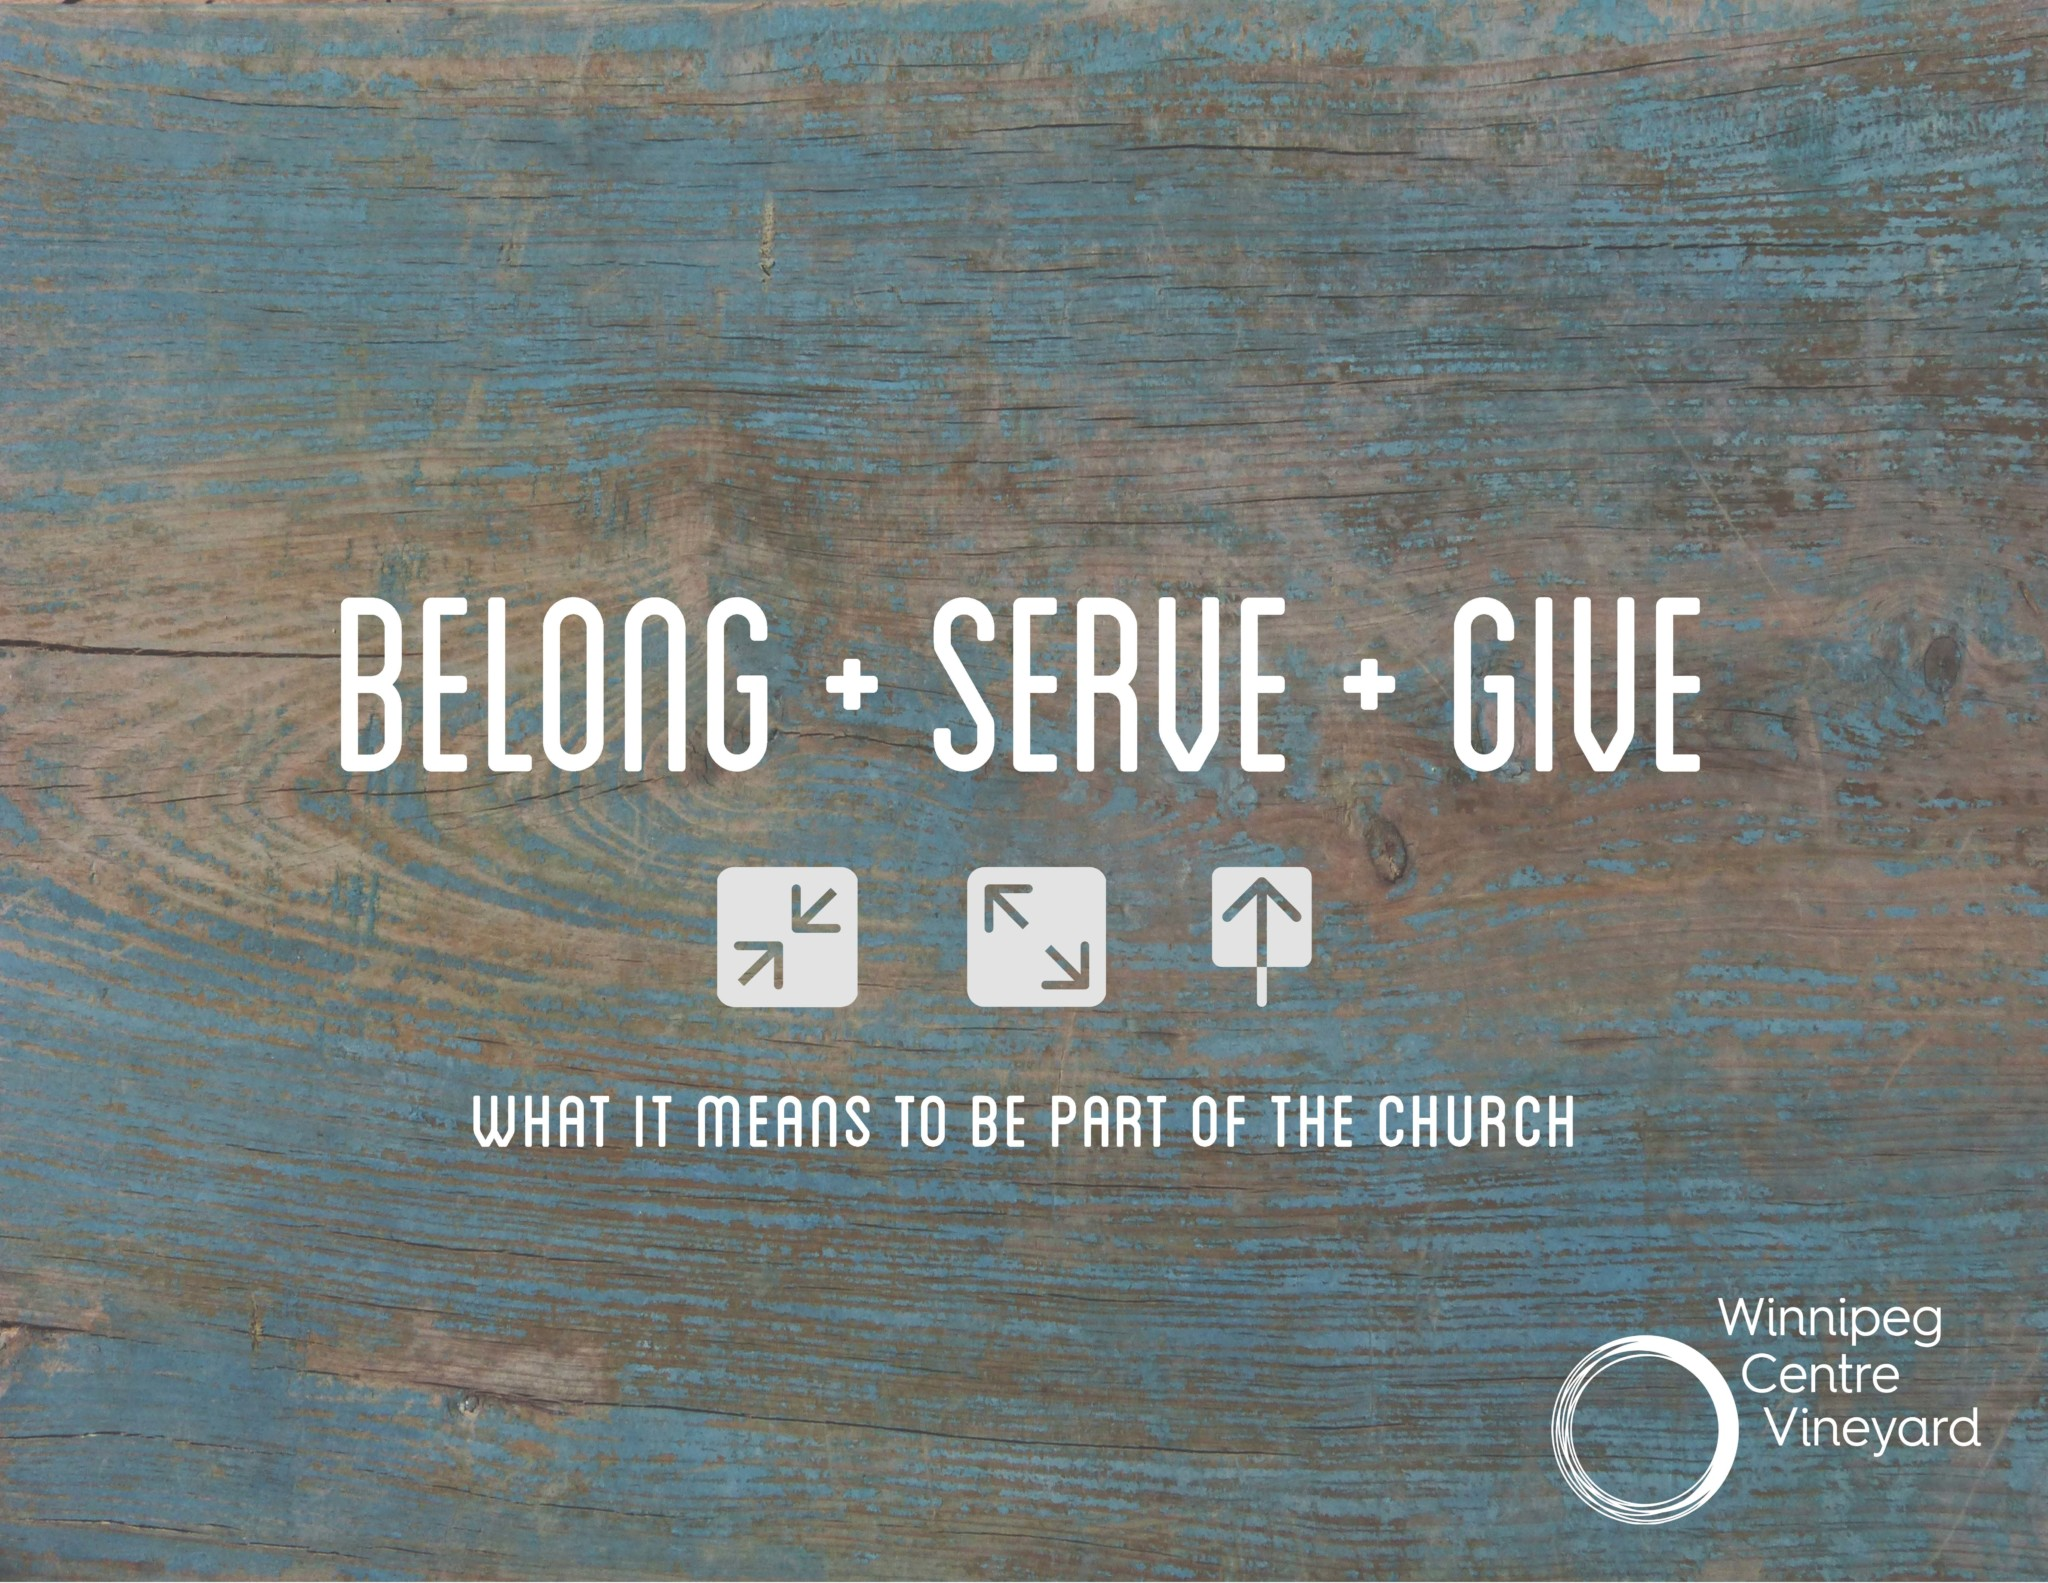 Belong, Serve, Give ~ All Members of One Body